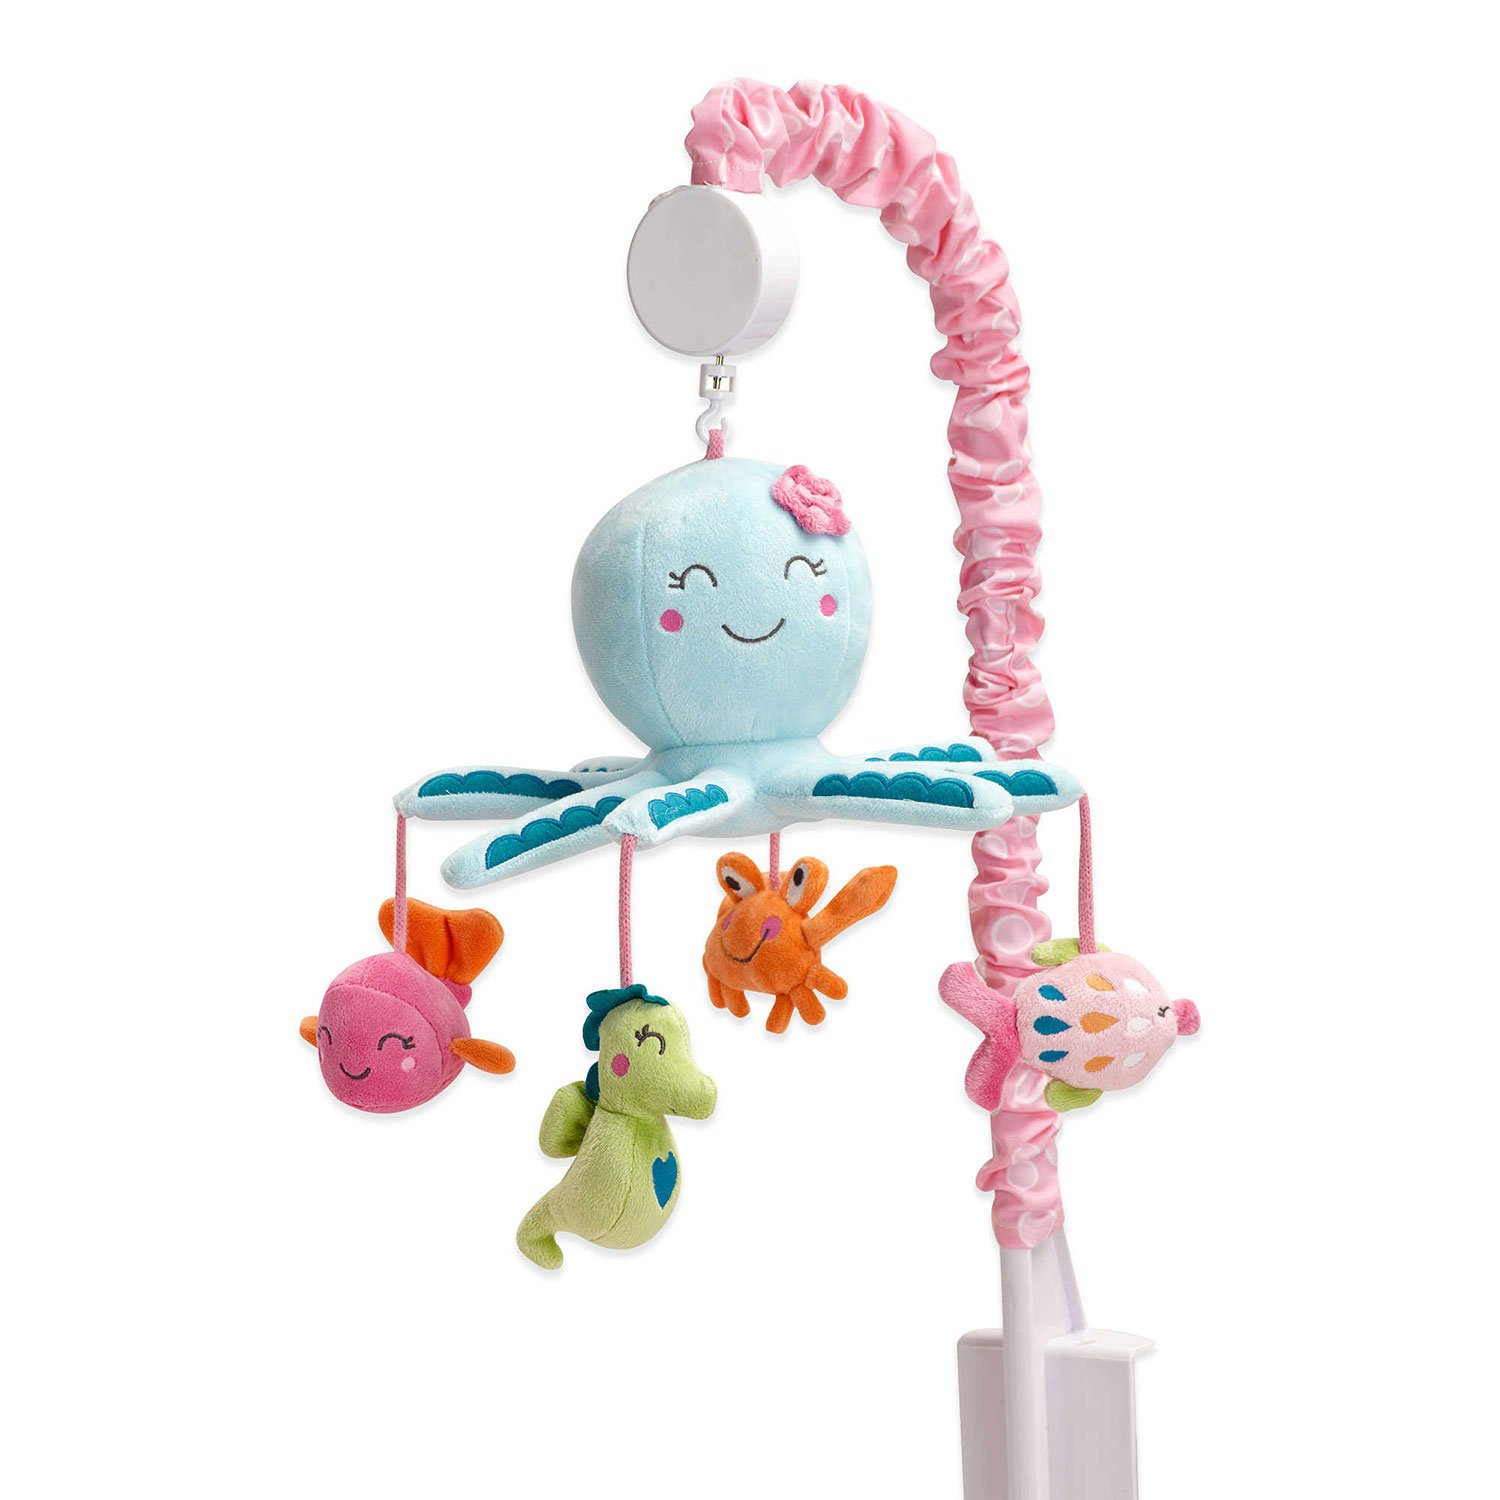 Carter's Sea Collection Musical Mobile, Pink/Blue/Turquoise by Carter's